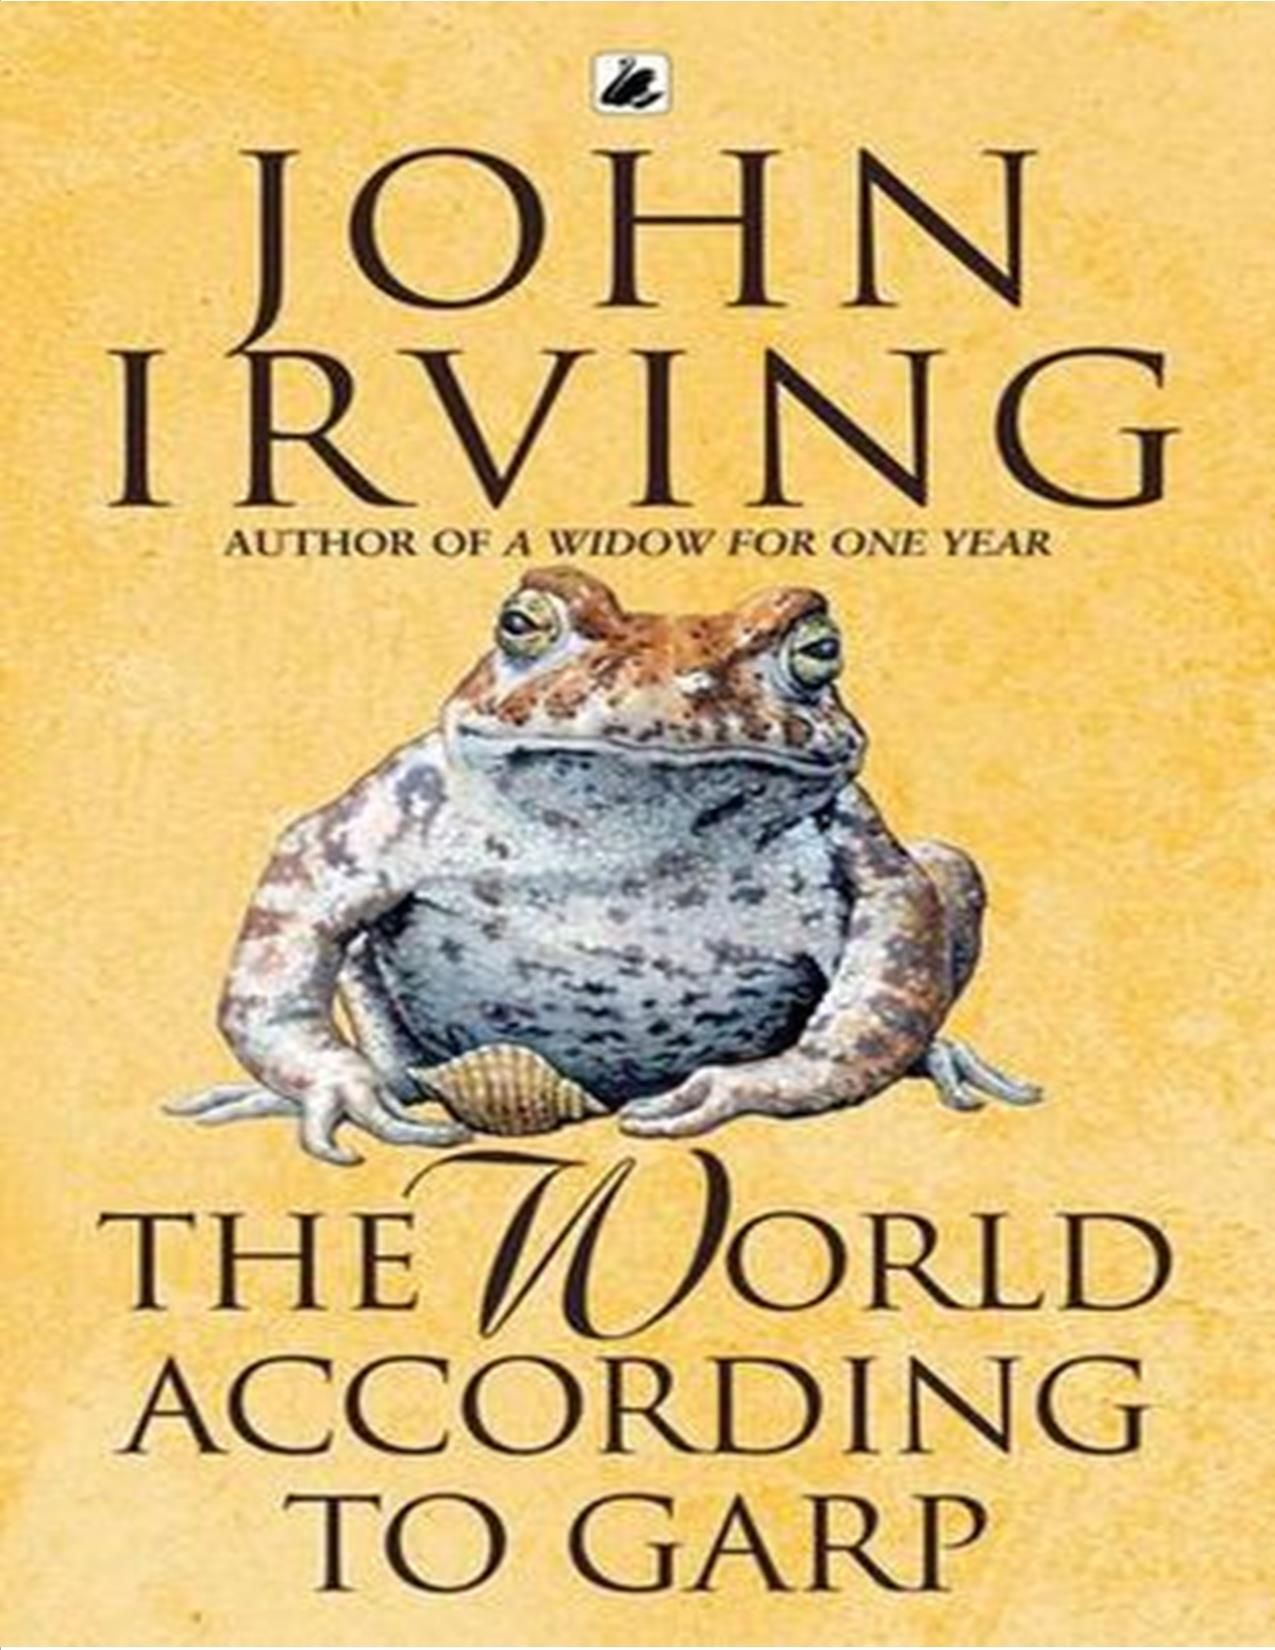 JOHN IRVING EPUB NOOK EBOOK DOWNLOAD